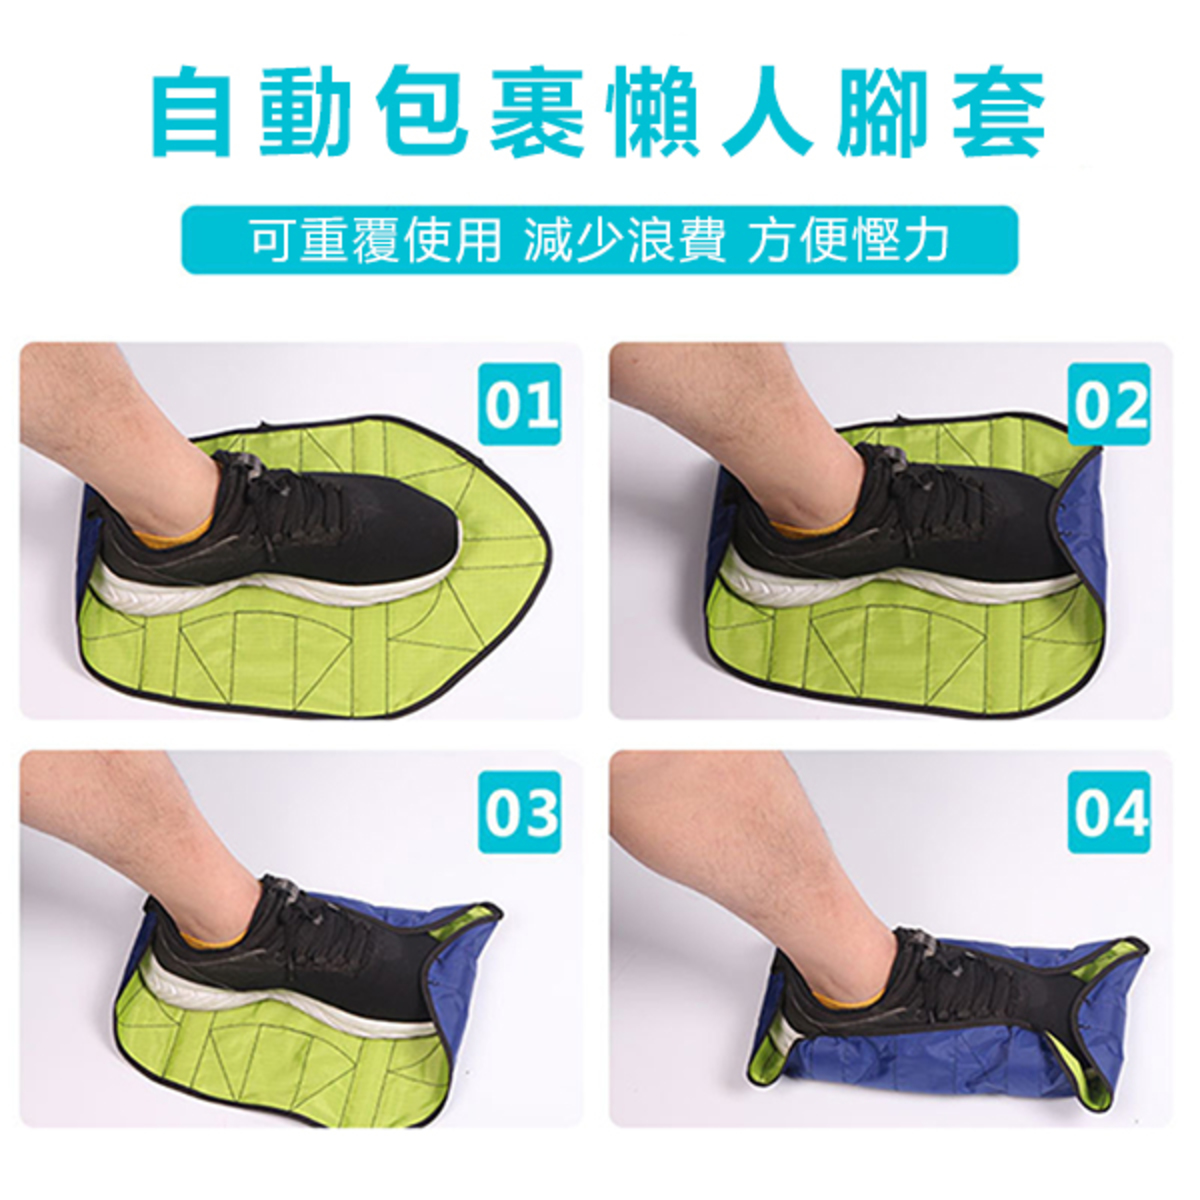 Household automatic shoe cover (T-23)